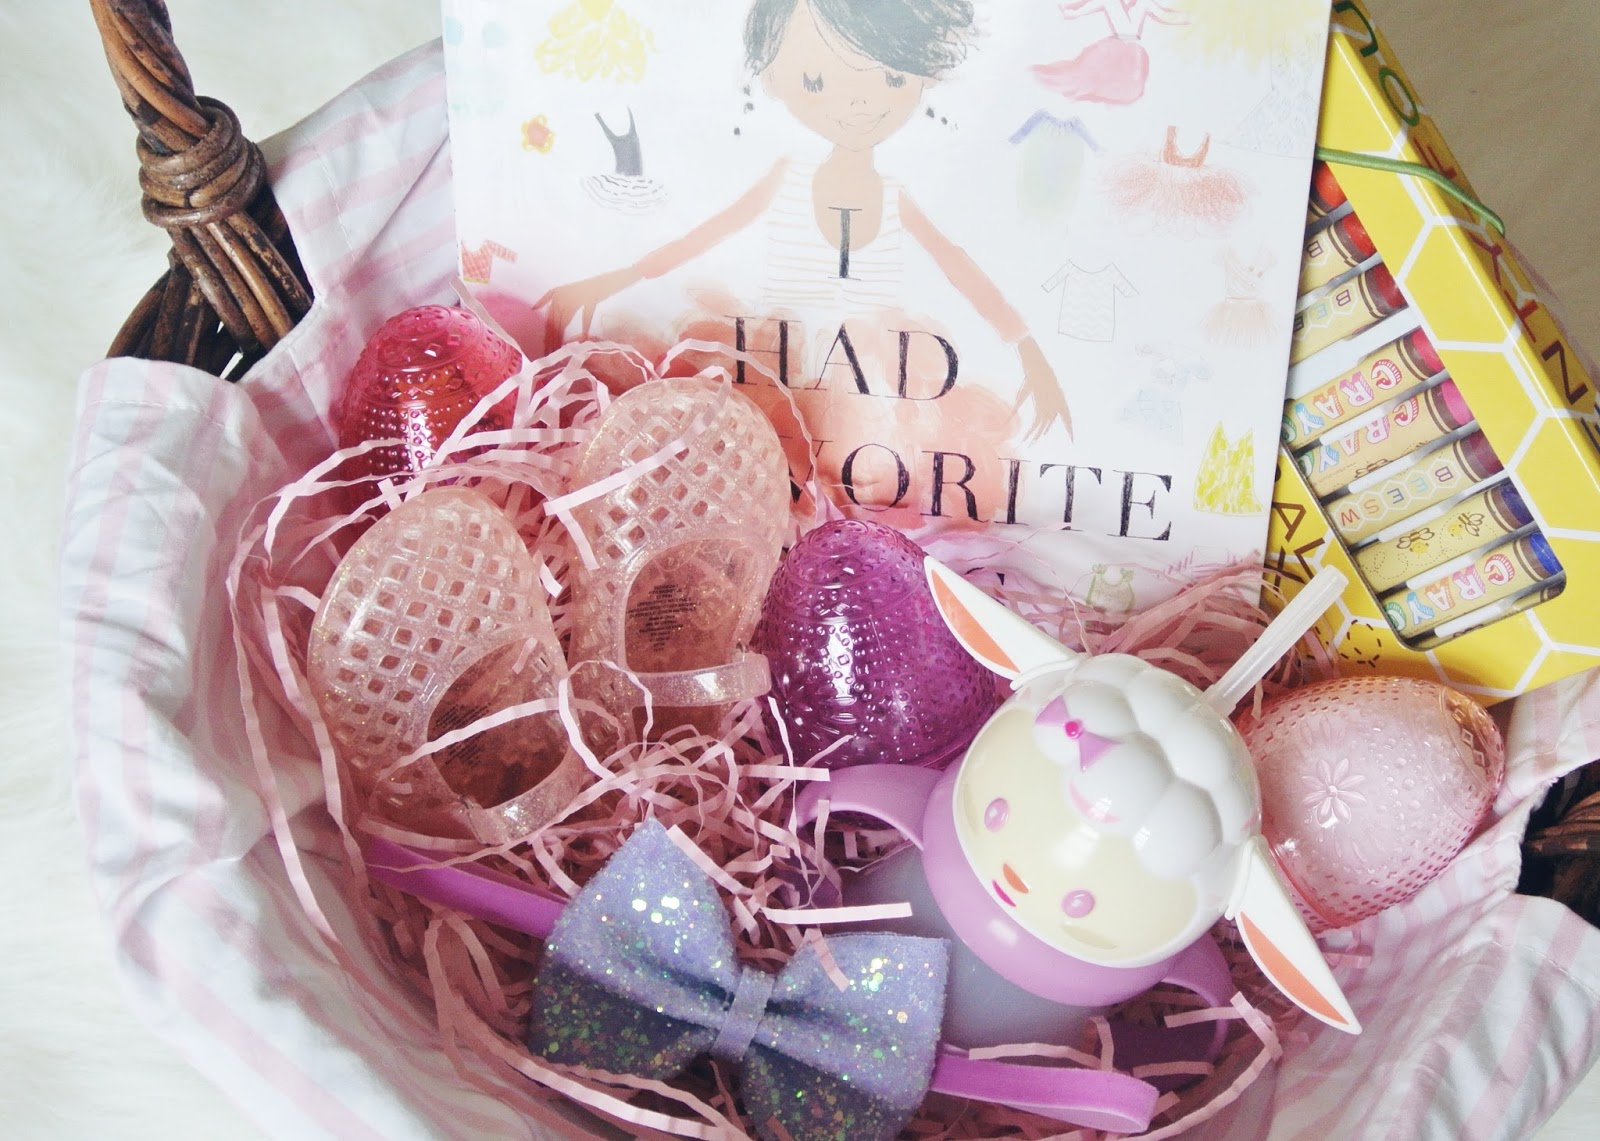 Easter basket goodies garvinandco i always love putting a book in her basket this year i chose i had a favorite dress which is so fitting because she has been playing dress up every day negle Choice Image